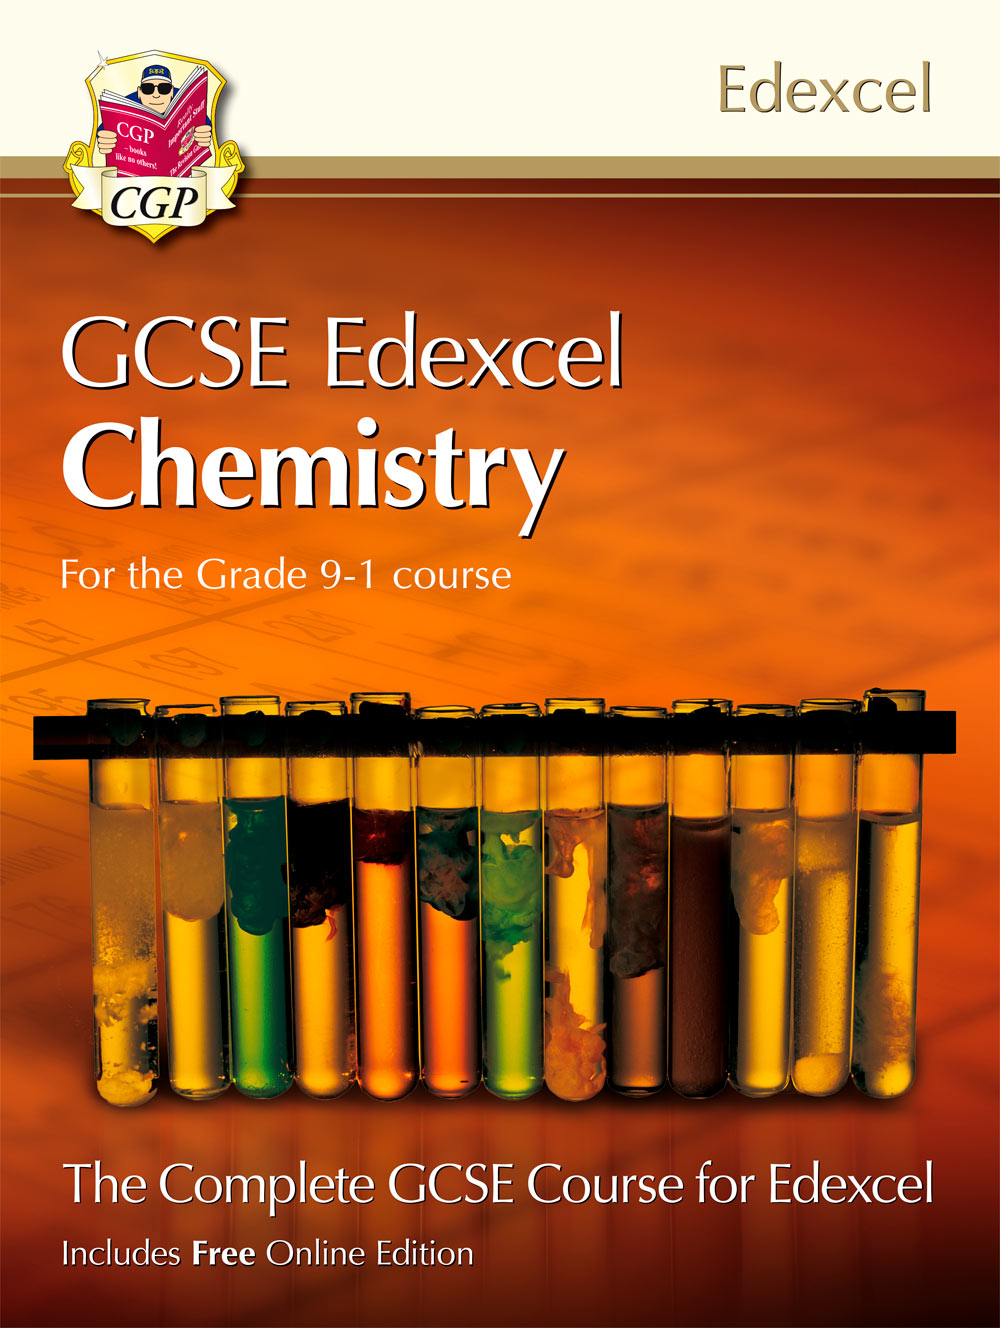 CETB41 - Grade 9-1 GCSE Chemistry for Edexcel: Student Book with Online Edition